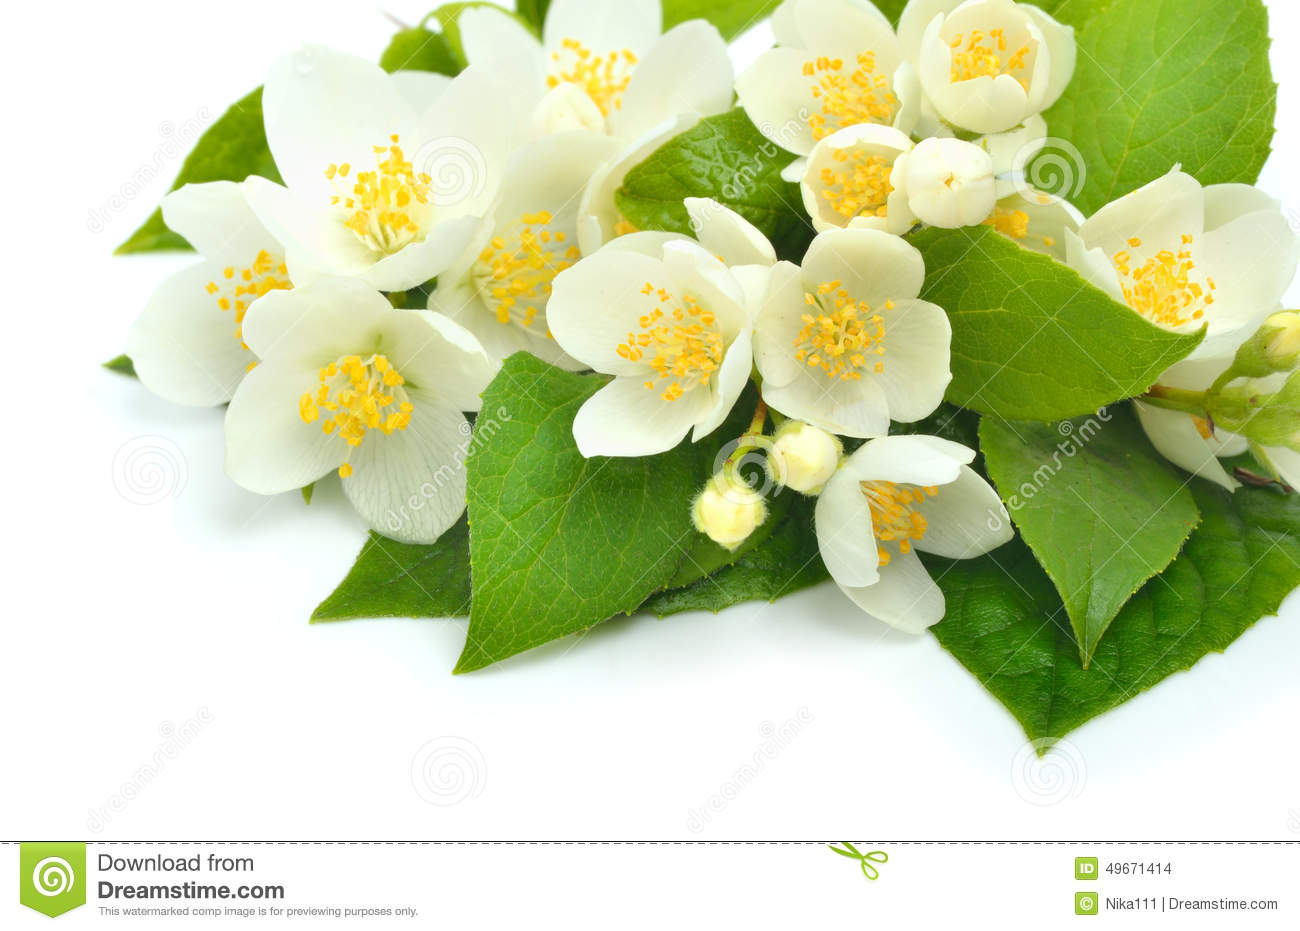 Jasmine flower bouquet isolated on white stock photo image of jasmine flower bouquet isolated on white izmirmasajfo Image collections